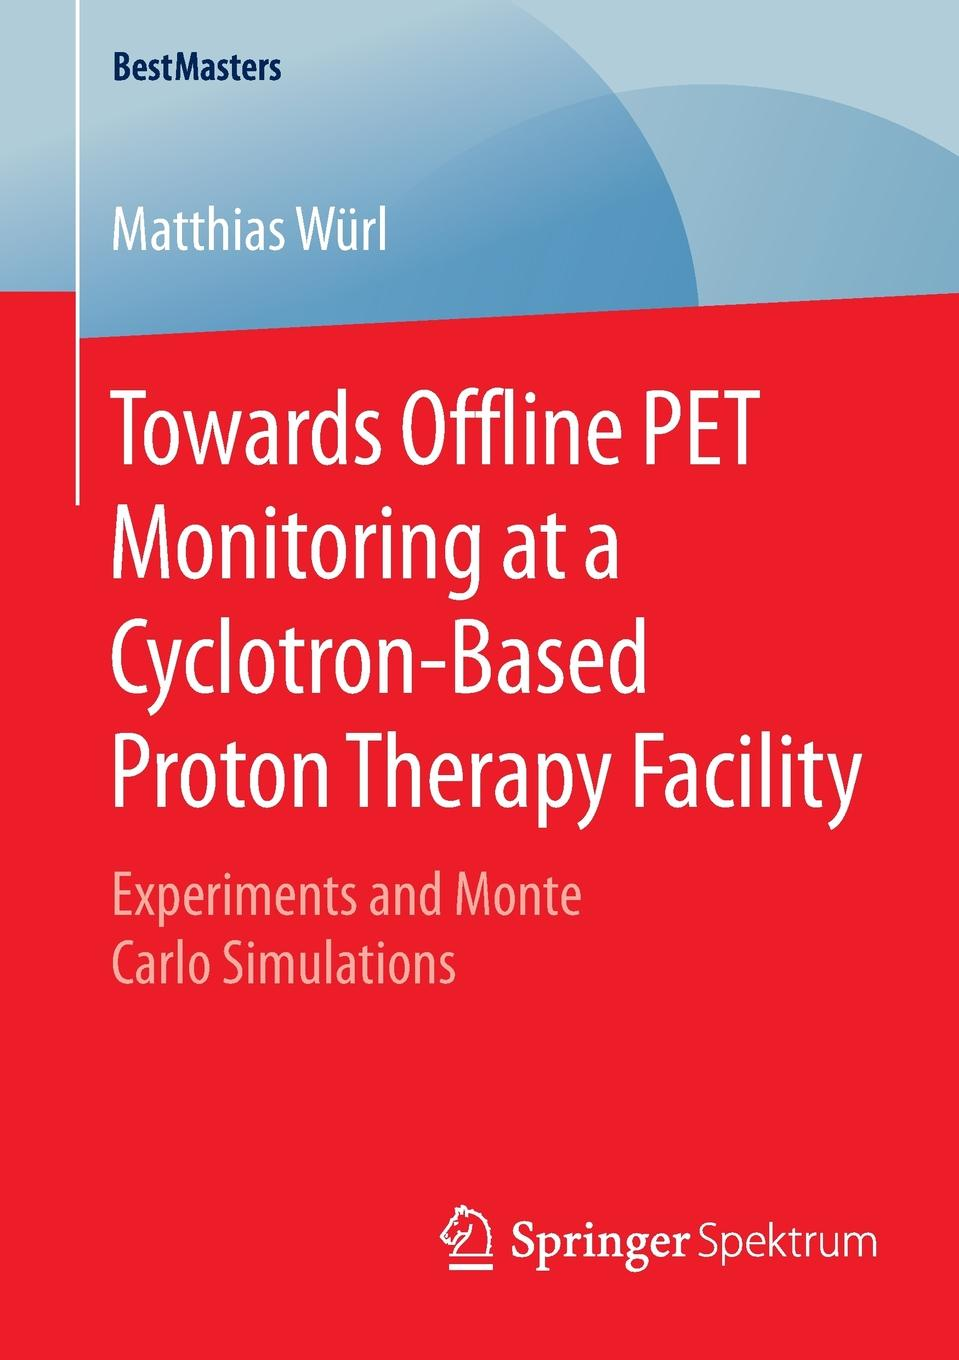 Matthias Würl Towards Offline PET Monitoring at a Cyclotron-Based Proton Therapy Facility. Experiments and Monte Carlo Simulations eulitz jan simulation of the proton therapy gantry at the oncoray dresden